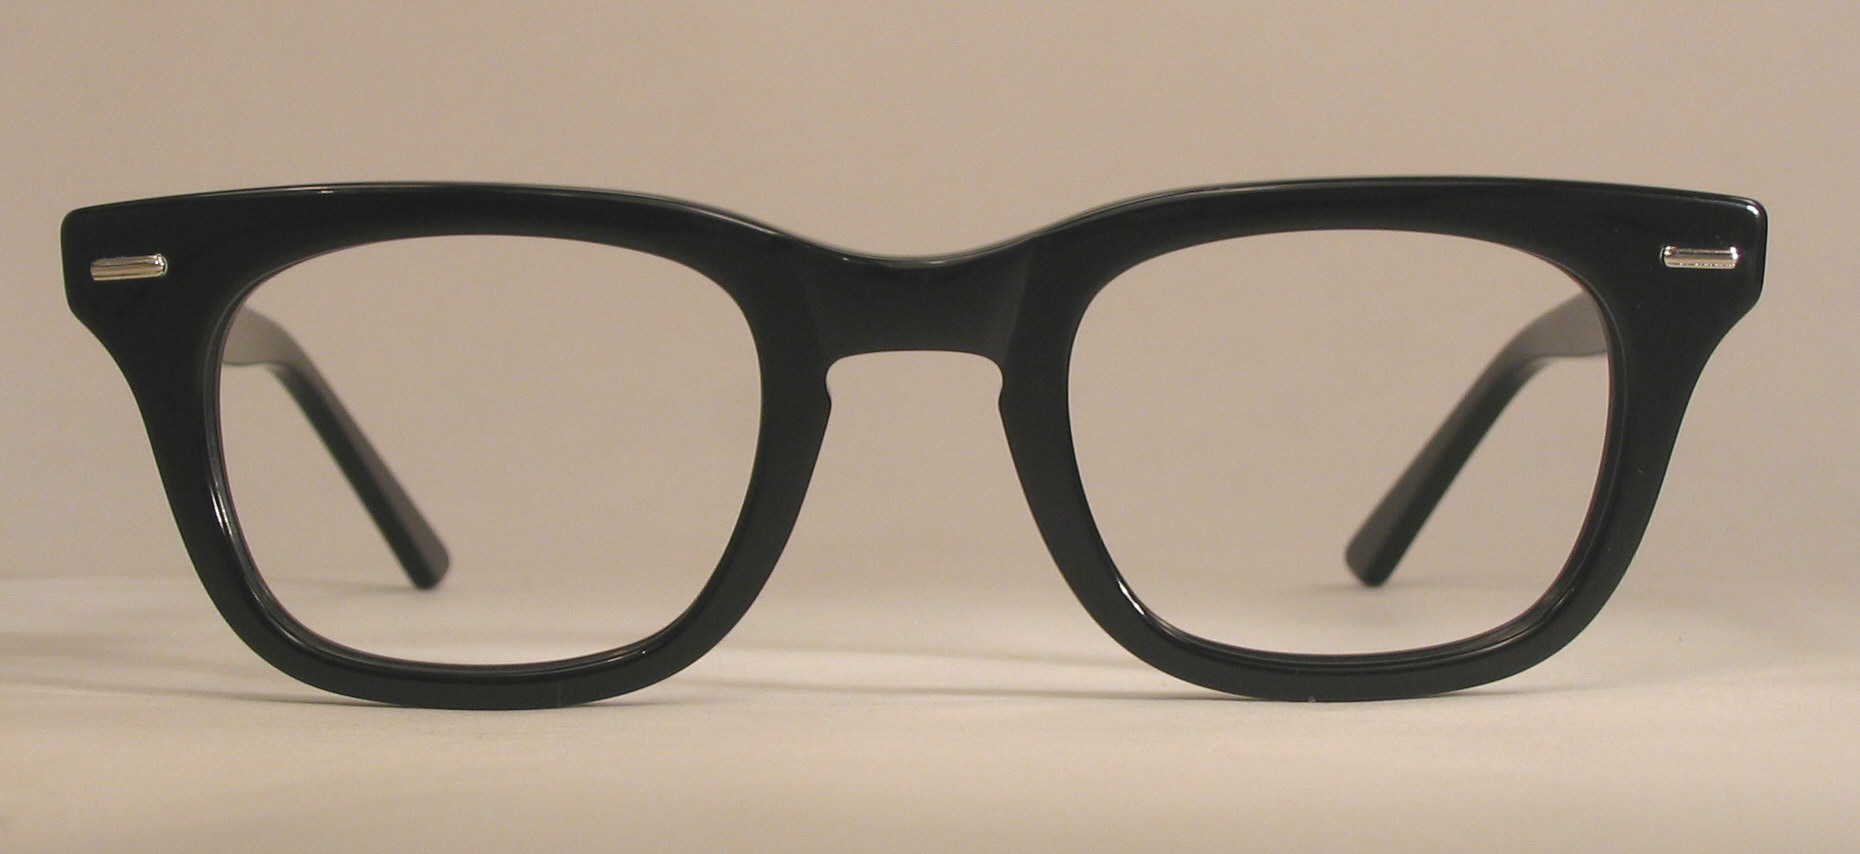 e95bb452d0 Optometrist Attic - SHURON FREEWAY BLACK CLASSIC EYEGLASS FRAMES